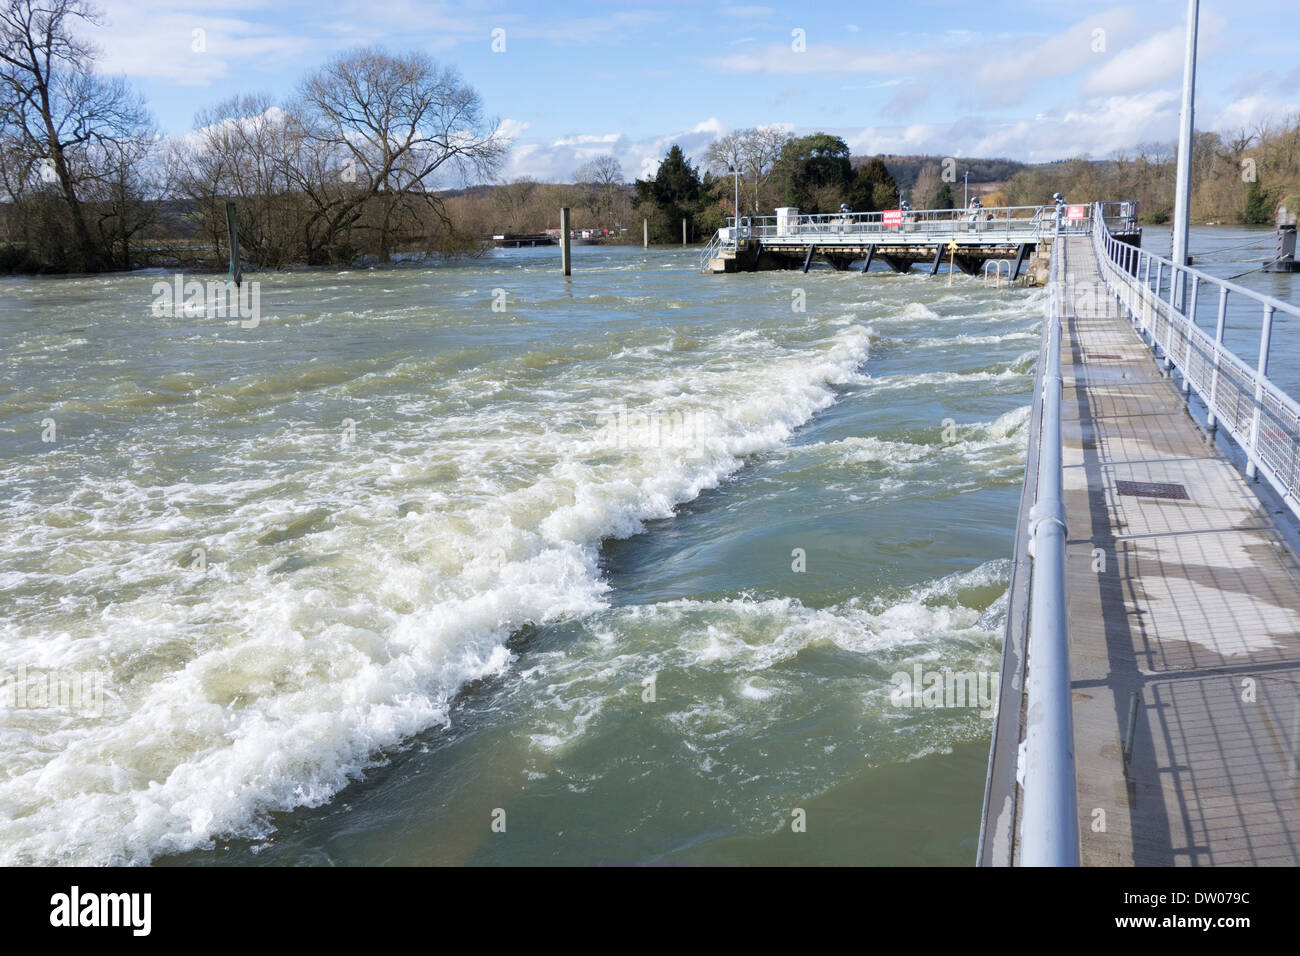 England, Berkshire. River Thames in flood at Hambleden lock weir Stock Photo